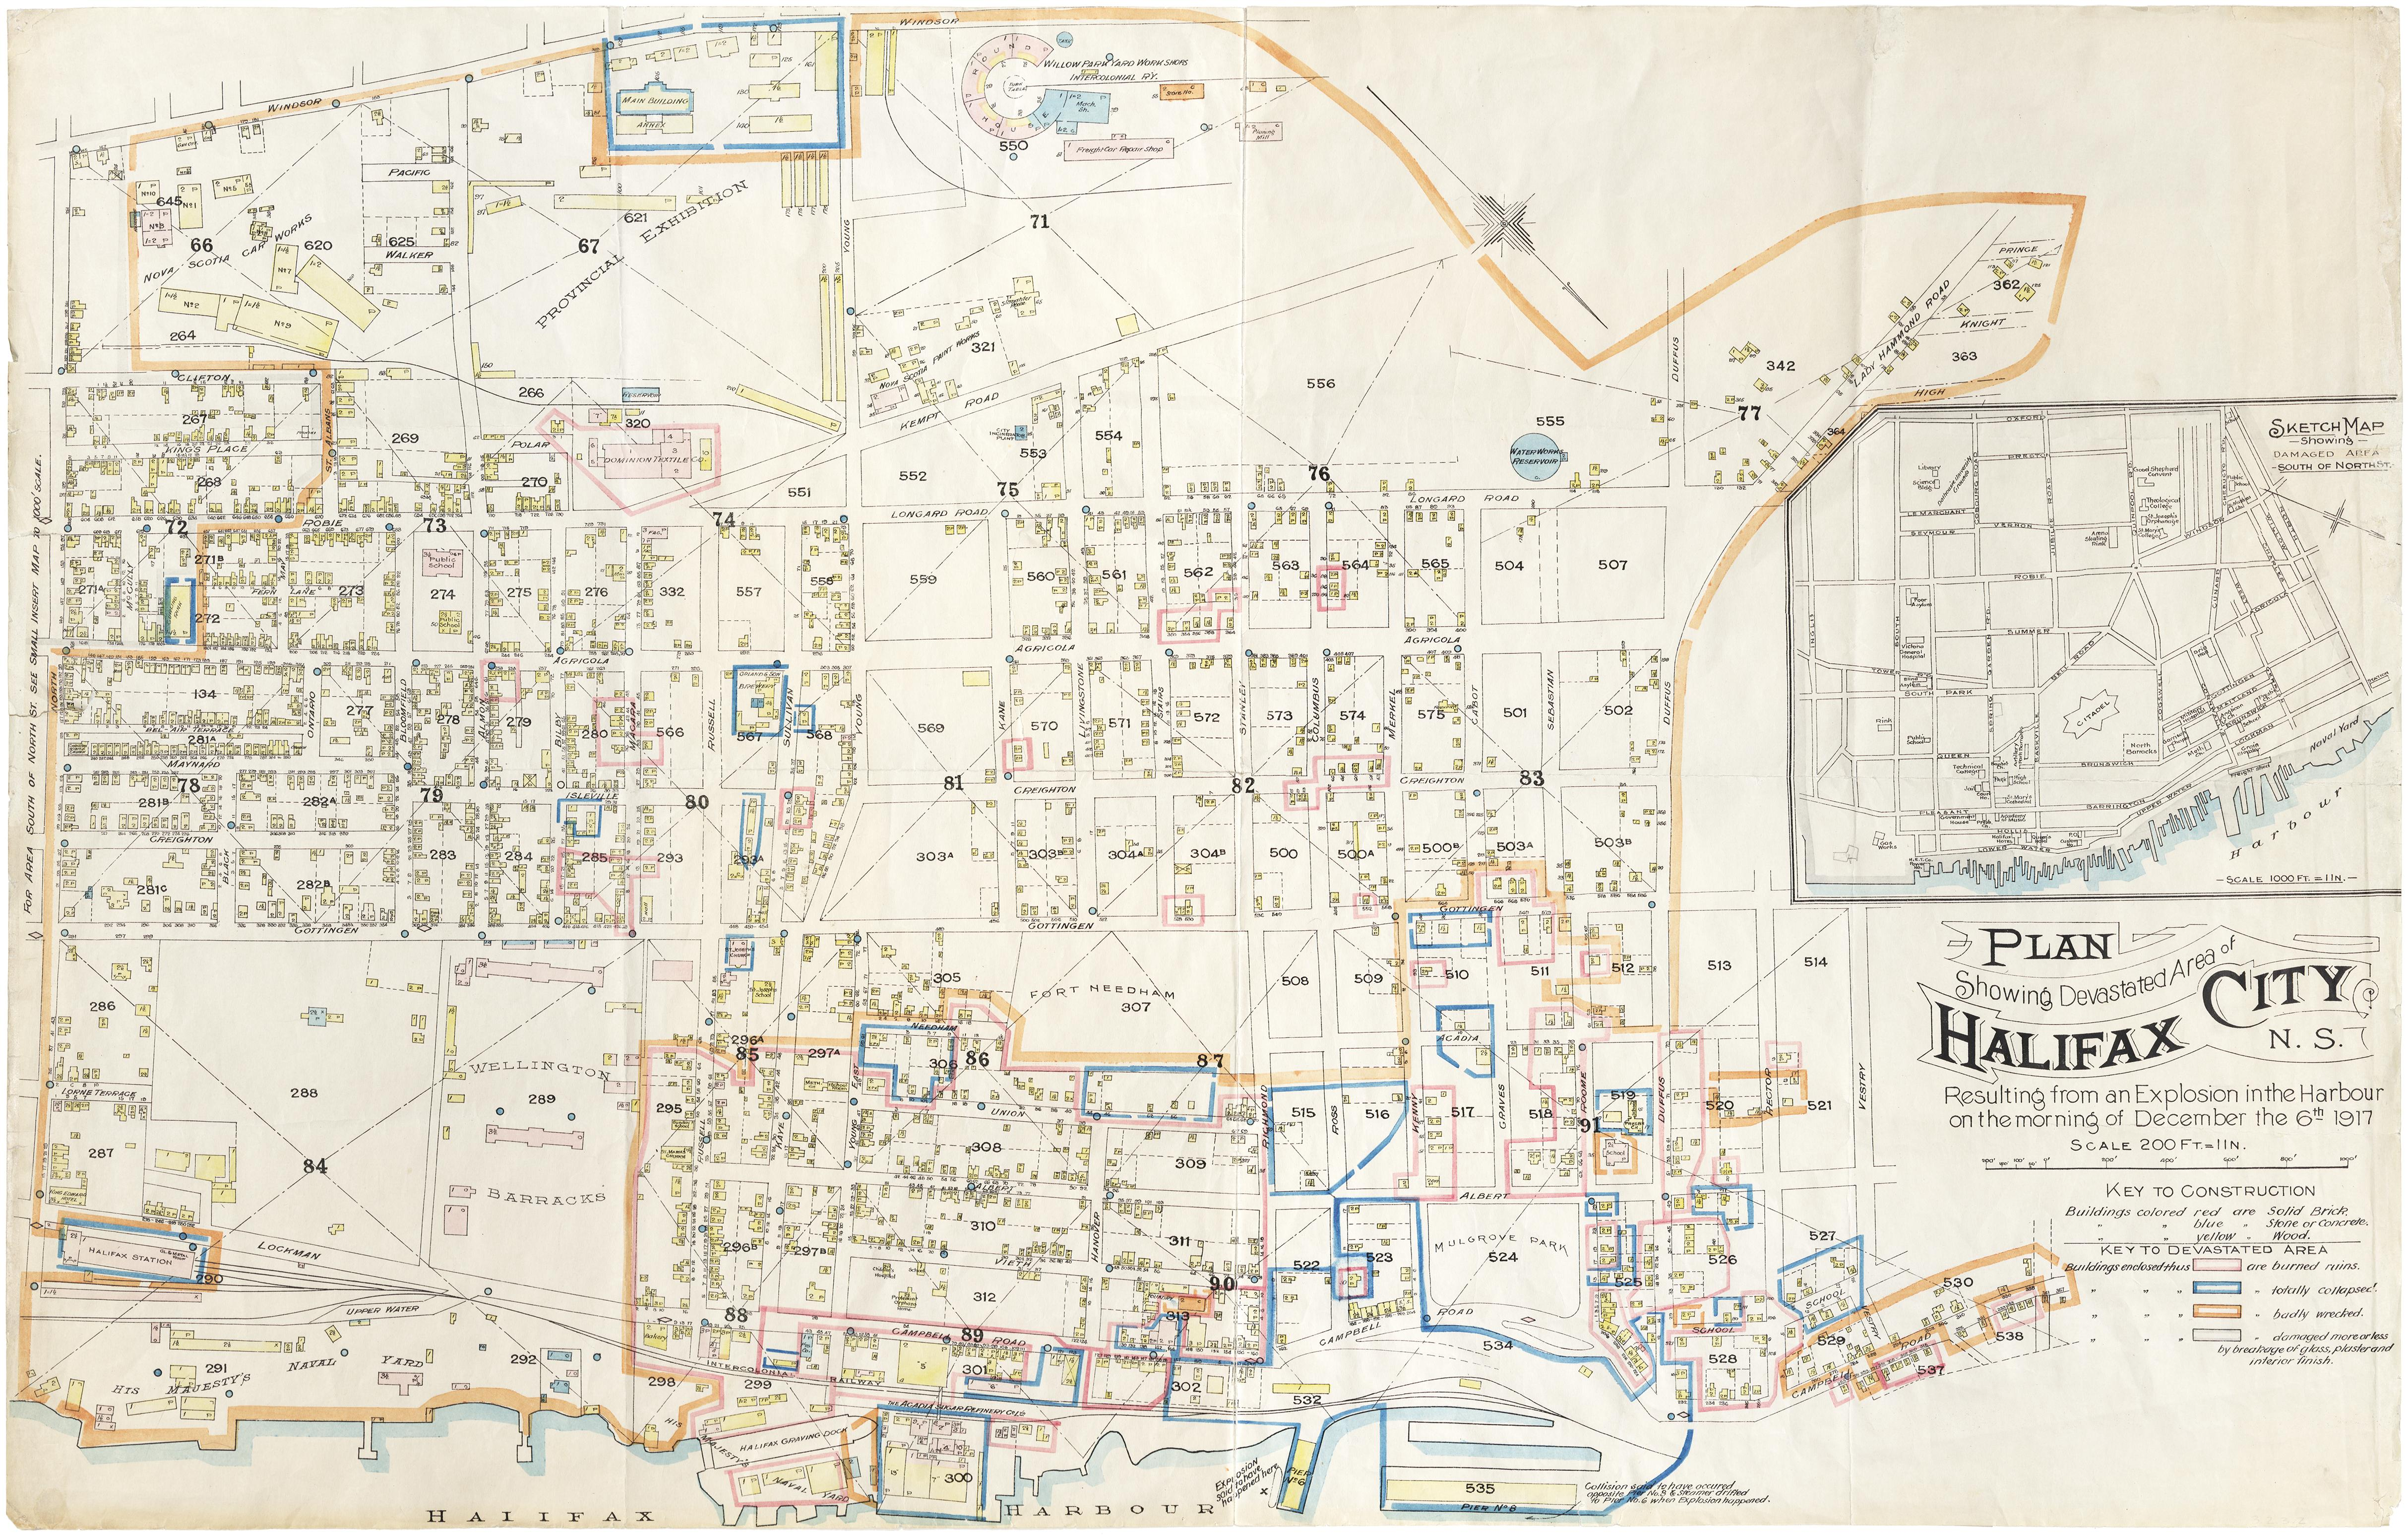 """Plan showing devastated area of Halifax City, N.S."""